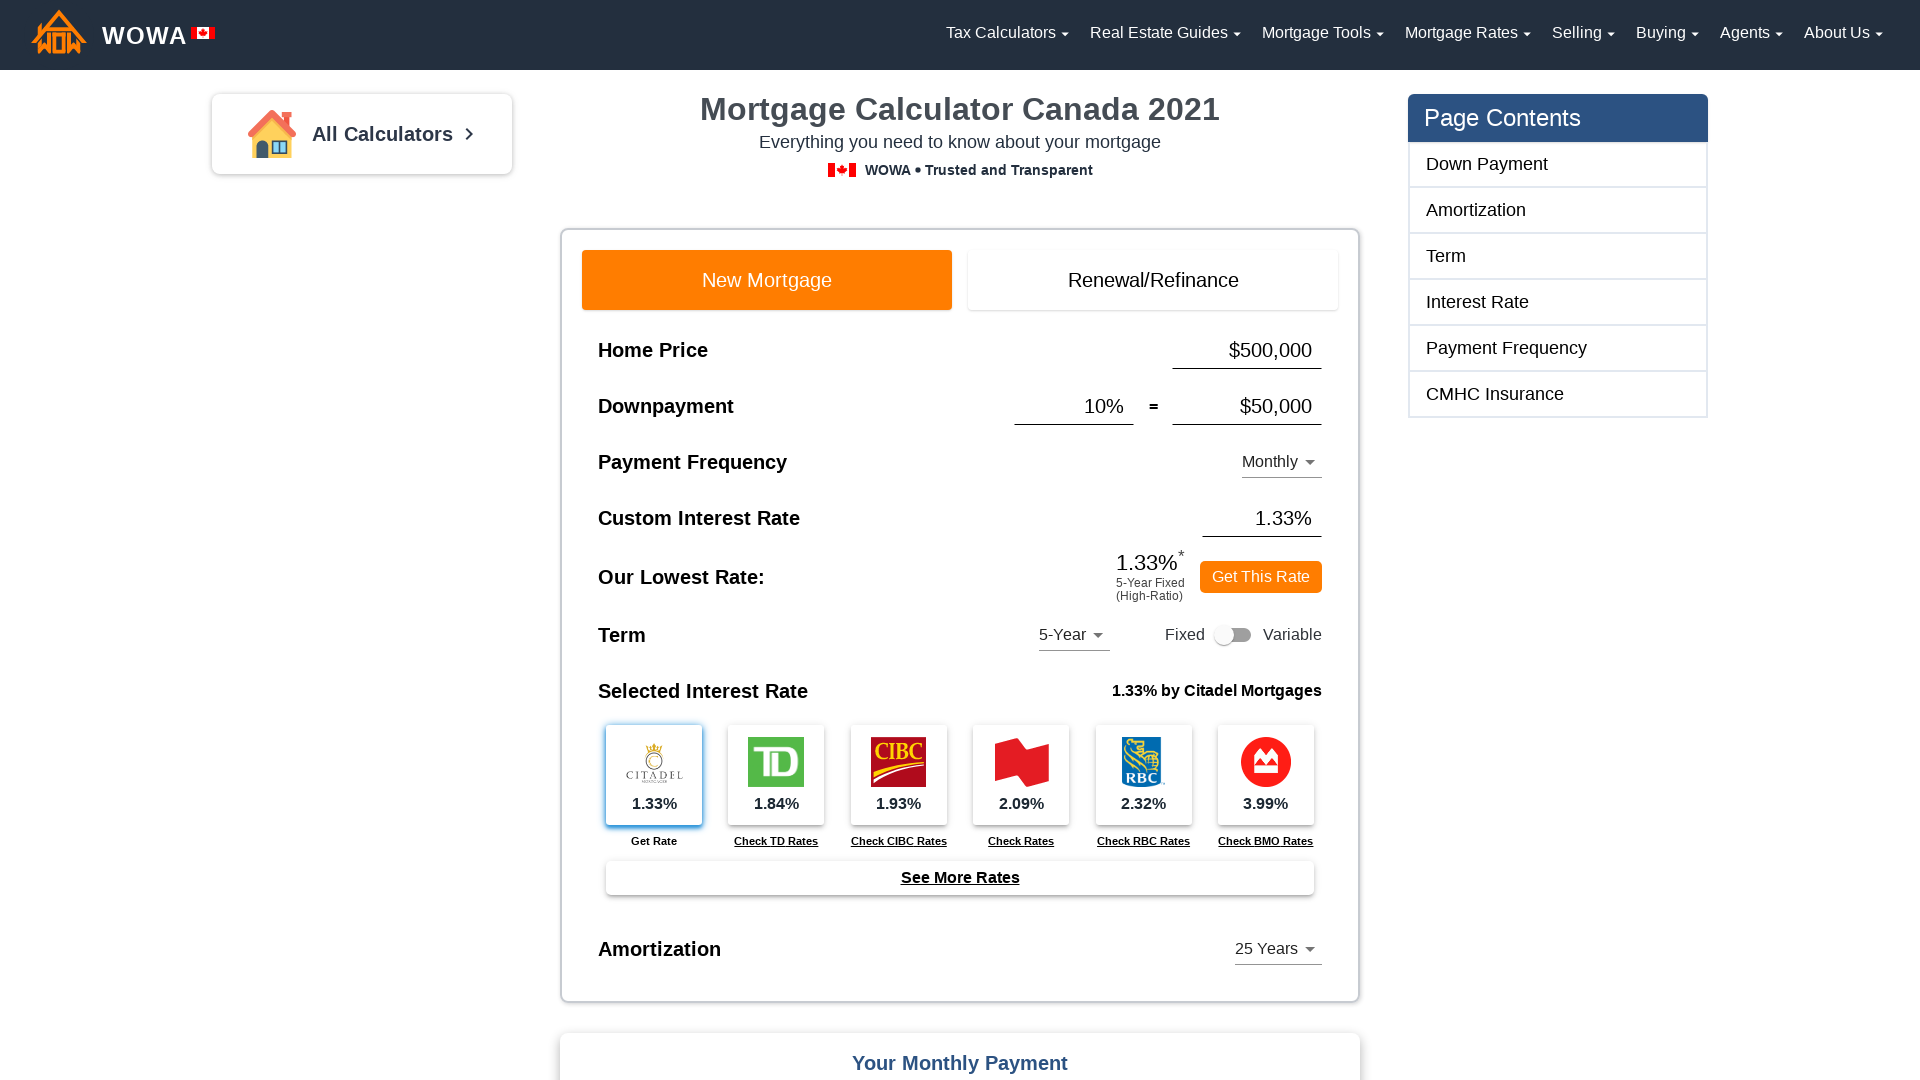 Mortgage Calculator Canada 2021 – Payments and Amortization